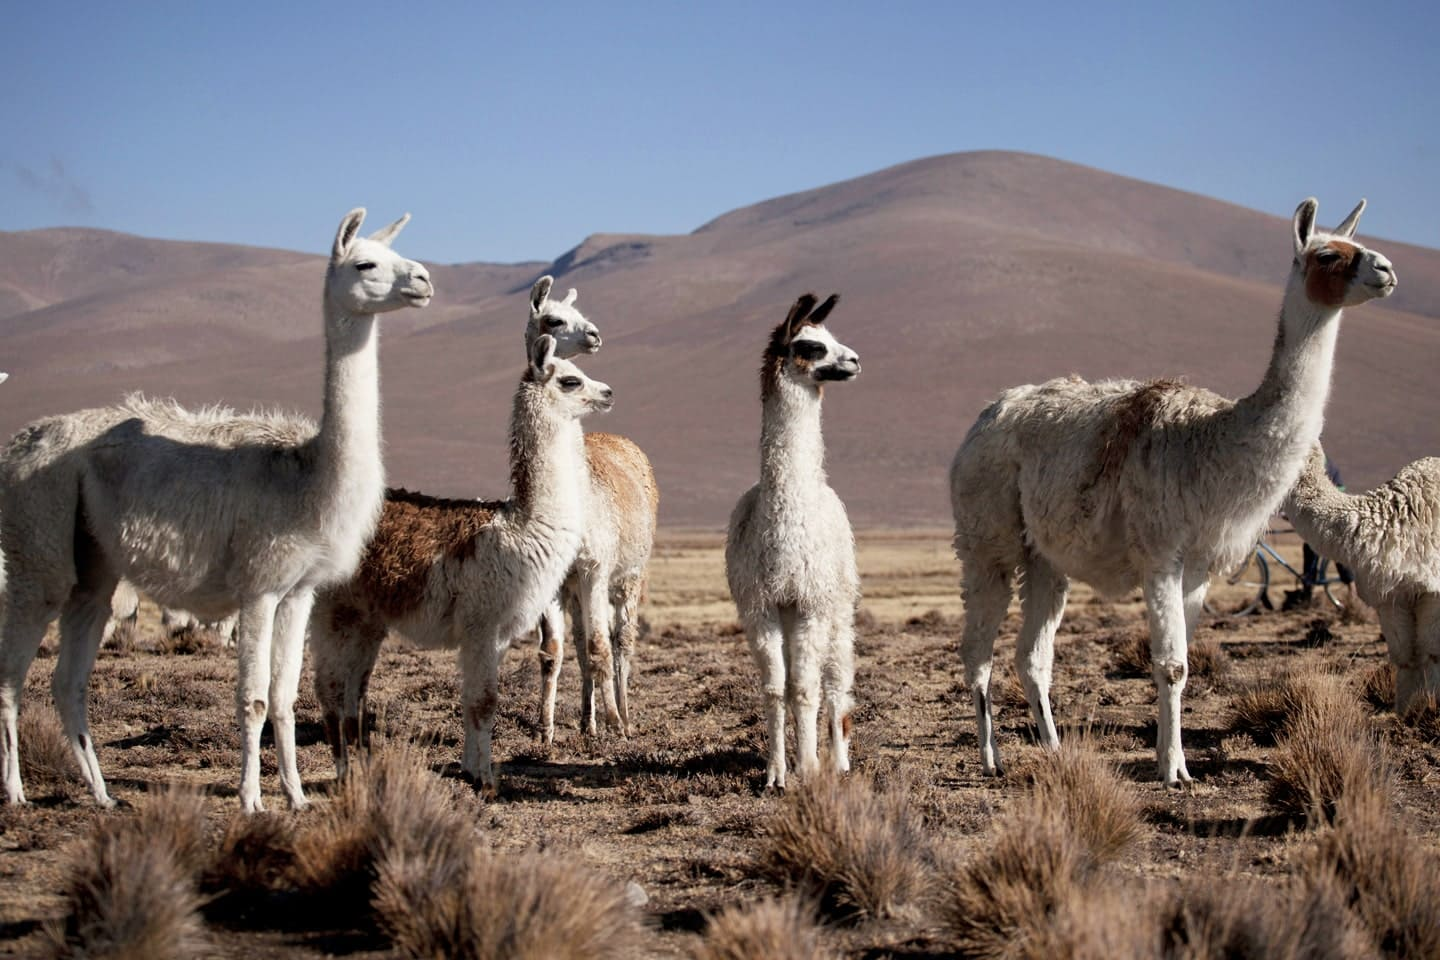 Group of alpacas animals in the plateau of Peru